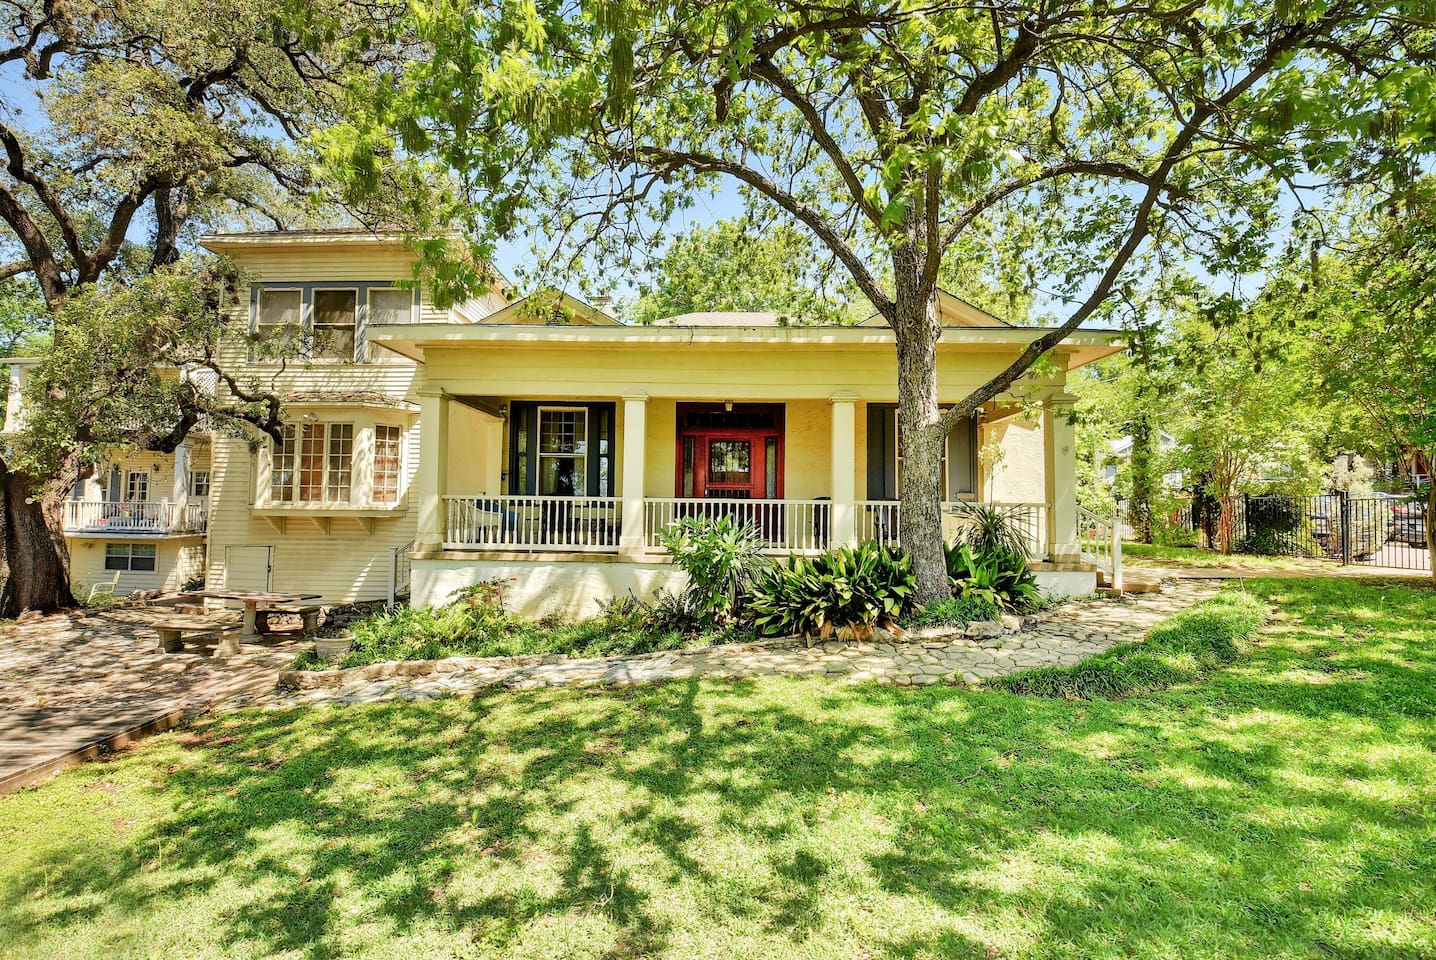 Welcome to Austin! The historic Carrington House is professionally managed by TurnKey Vacation Rentals.